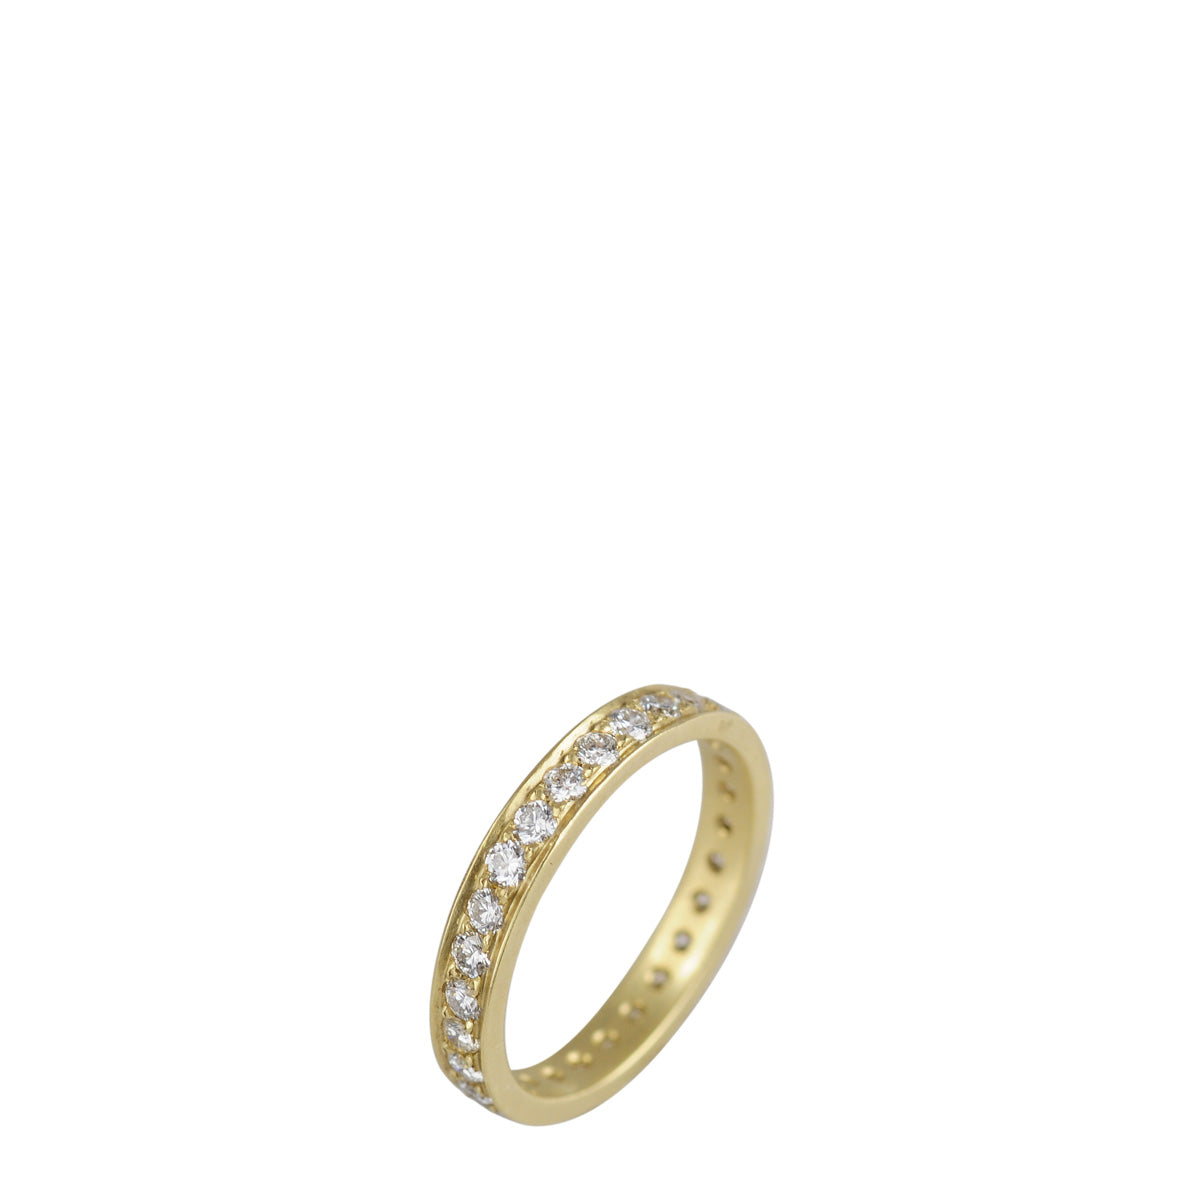 18K Gold 3mm Band with 2mm Diamonds